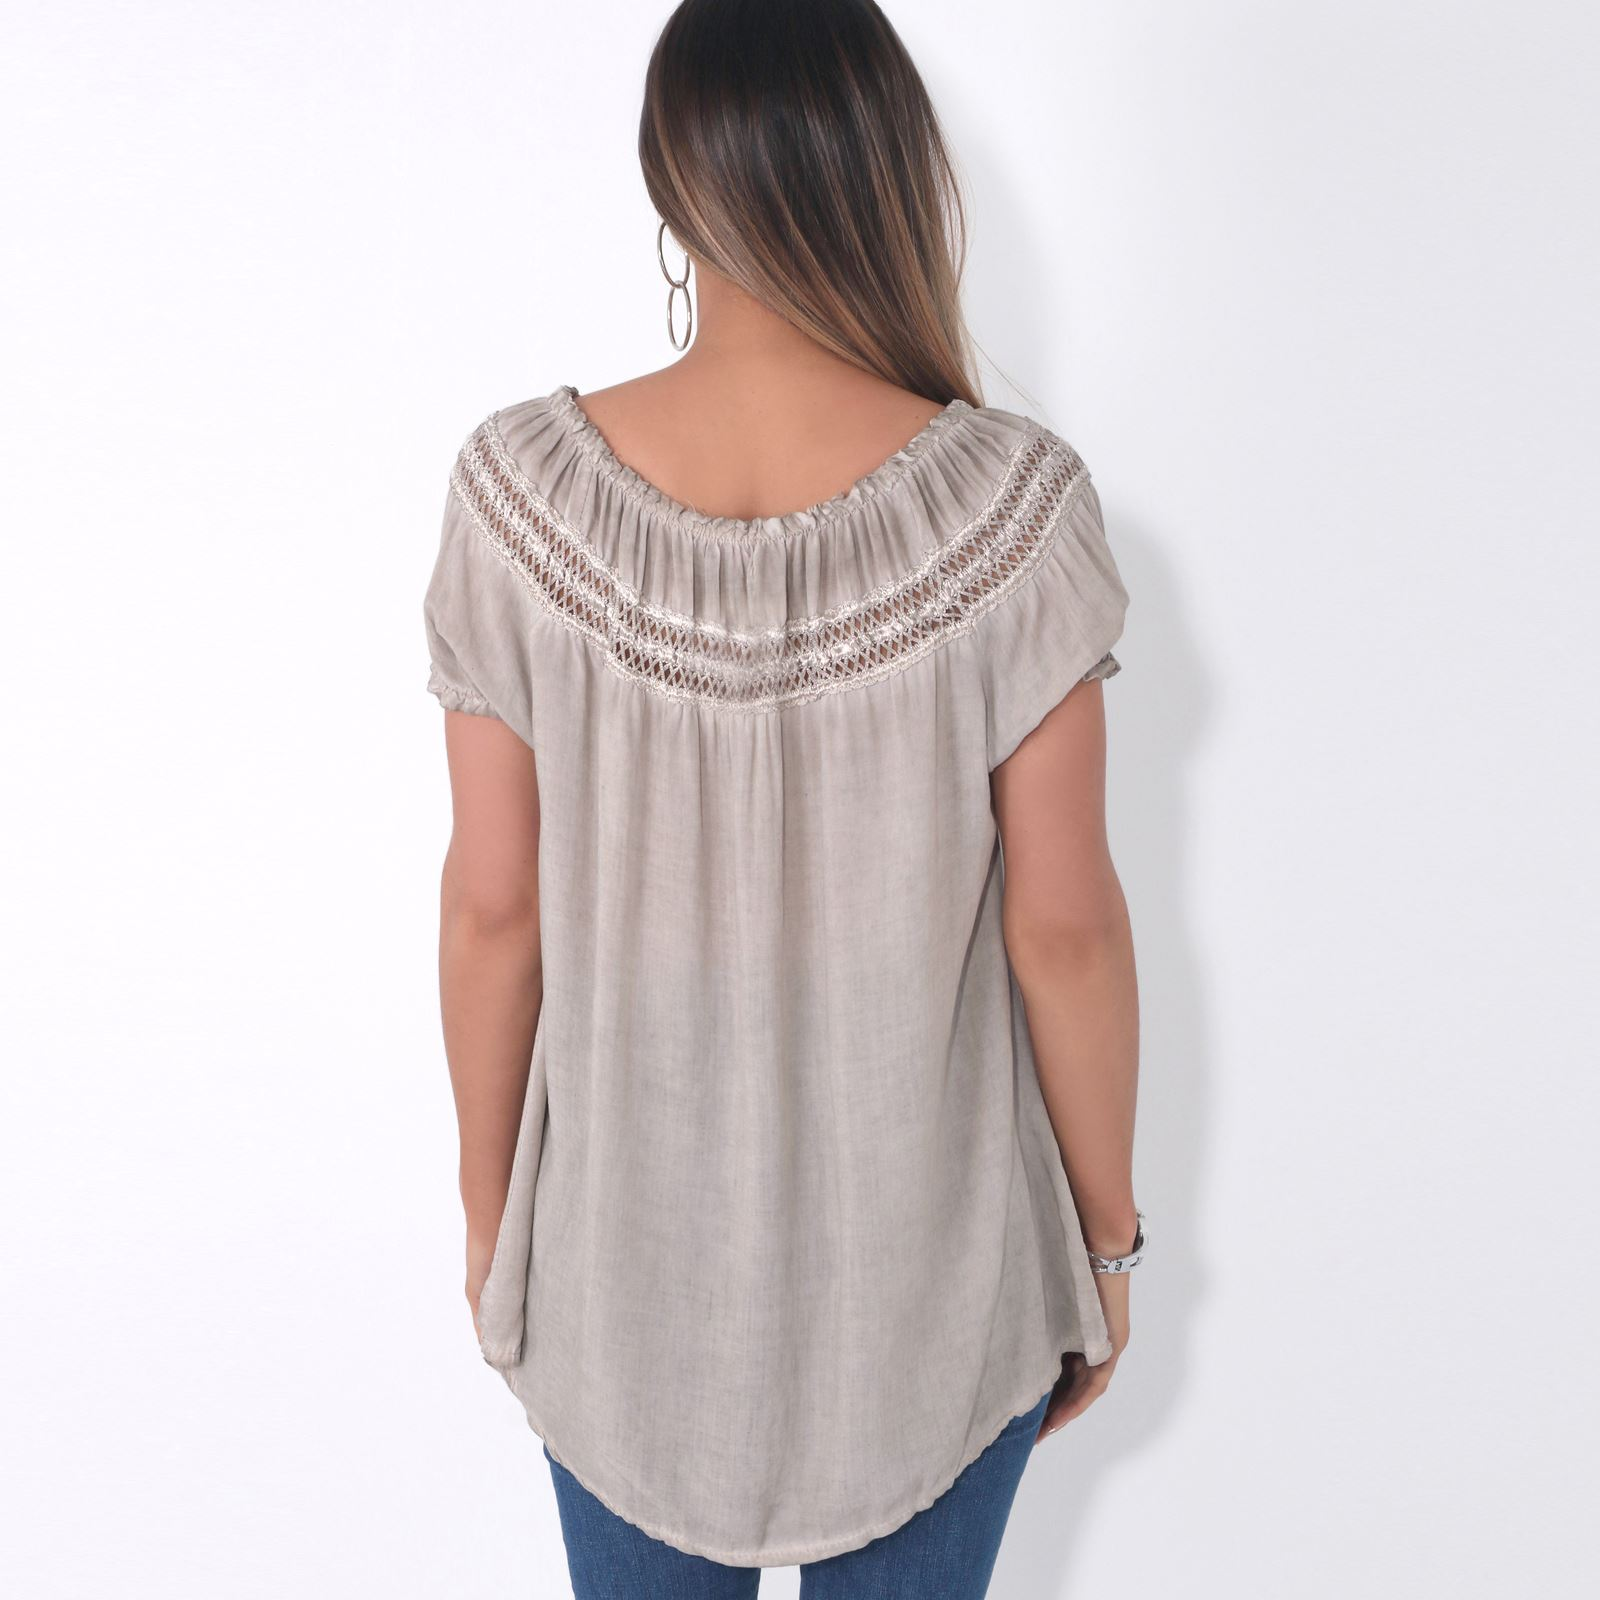 Womens-Off-Shoulder-Blouse-Gypsy-Boho-Cotton-T-Shirt-Top-Tunic-Summer-Loose-Fit thumbnail 13